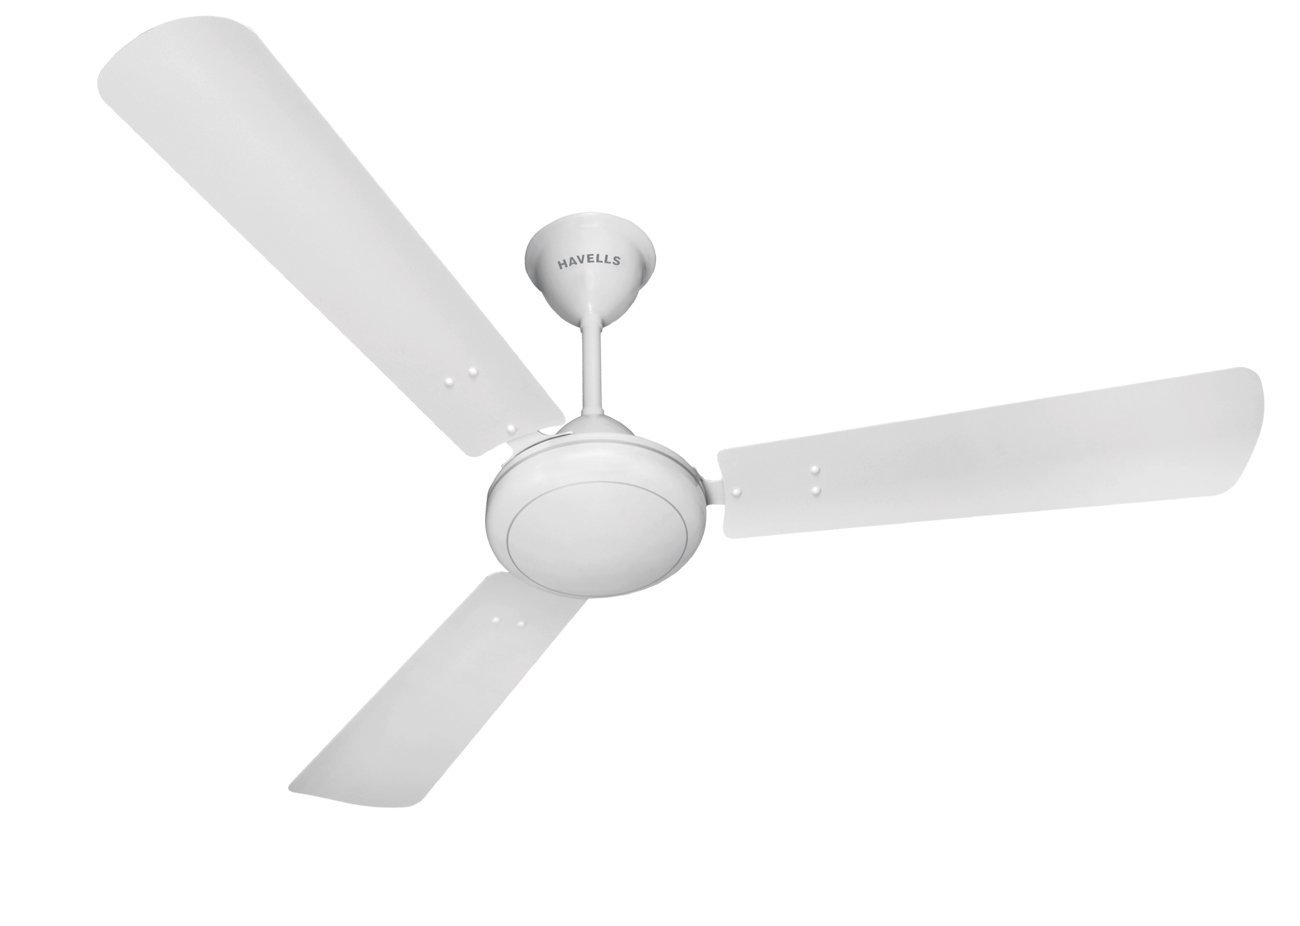 Buy havells ss 390 1200mm 68 watt metallic ceiling fan pearl buy havells ss 390 1200mm 68 watt metallic ceiling fan pearl white and silver online at low prices in india amazon mozeypictures Image collections